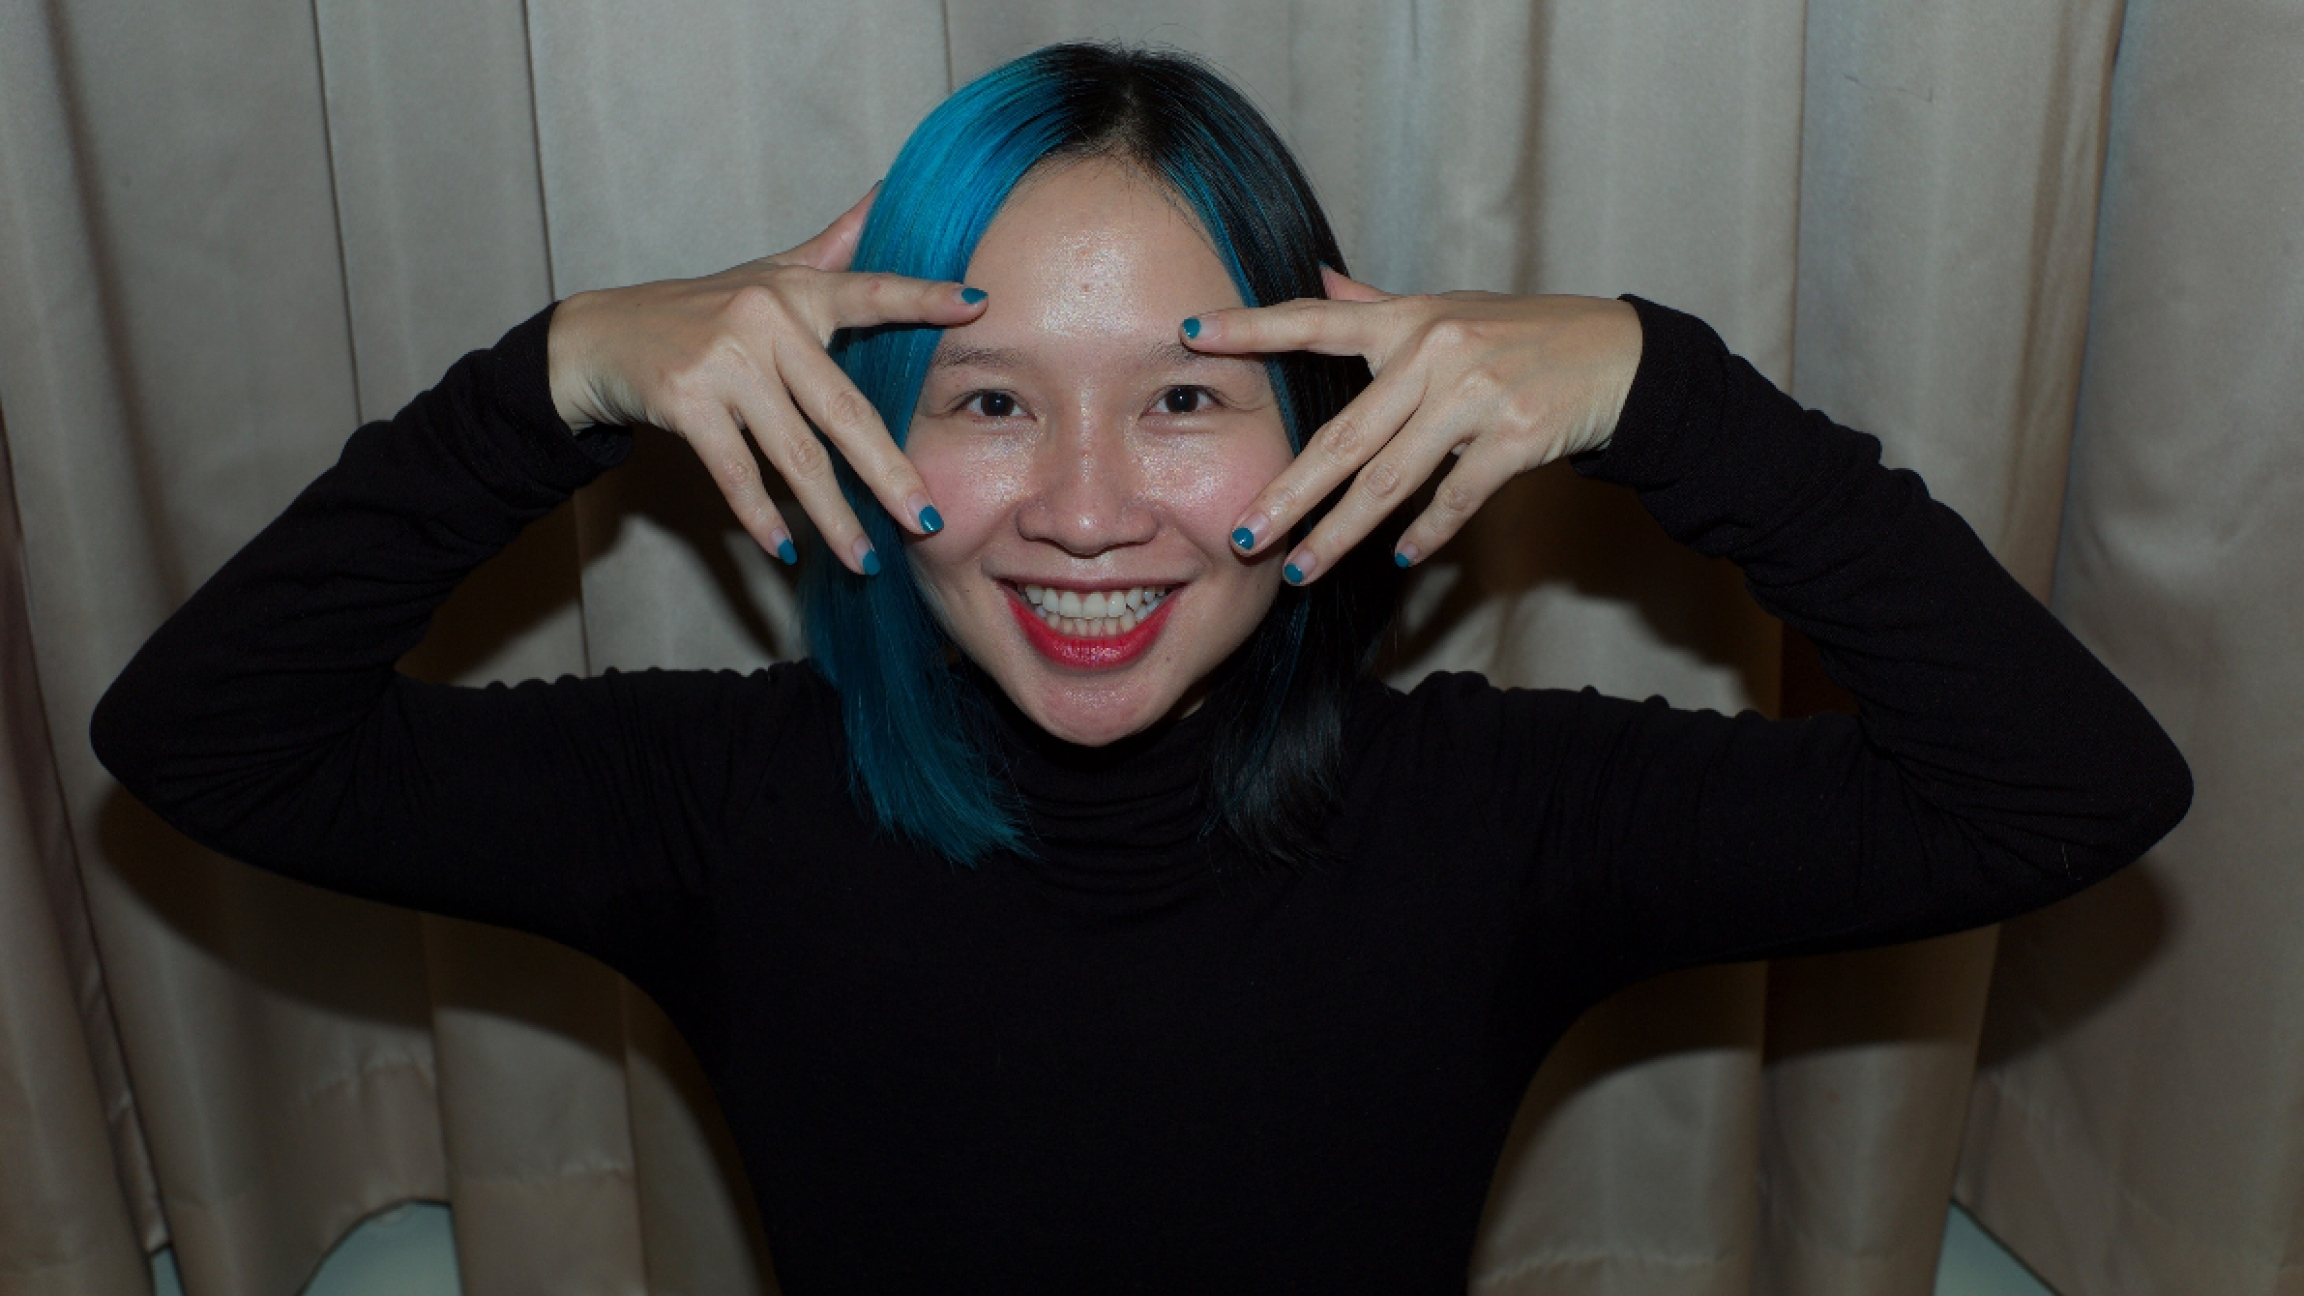 A voman with her hair painted blue holds both or her hands by her eyes.